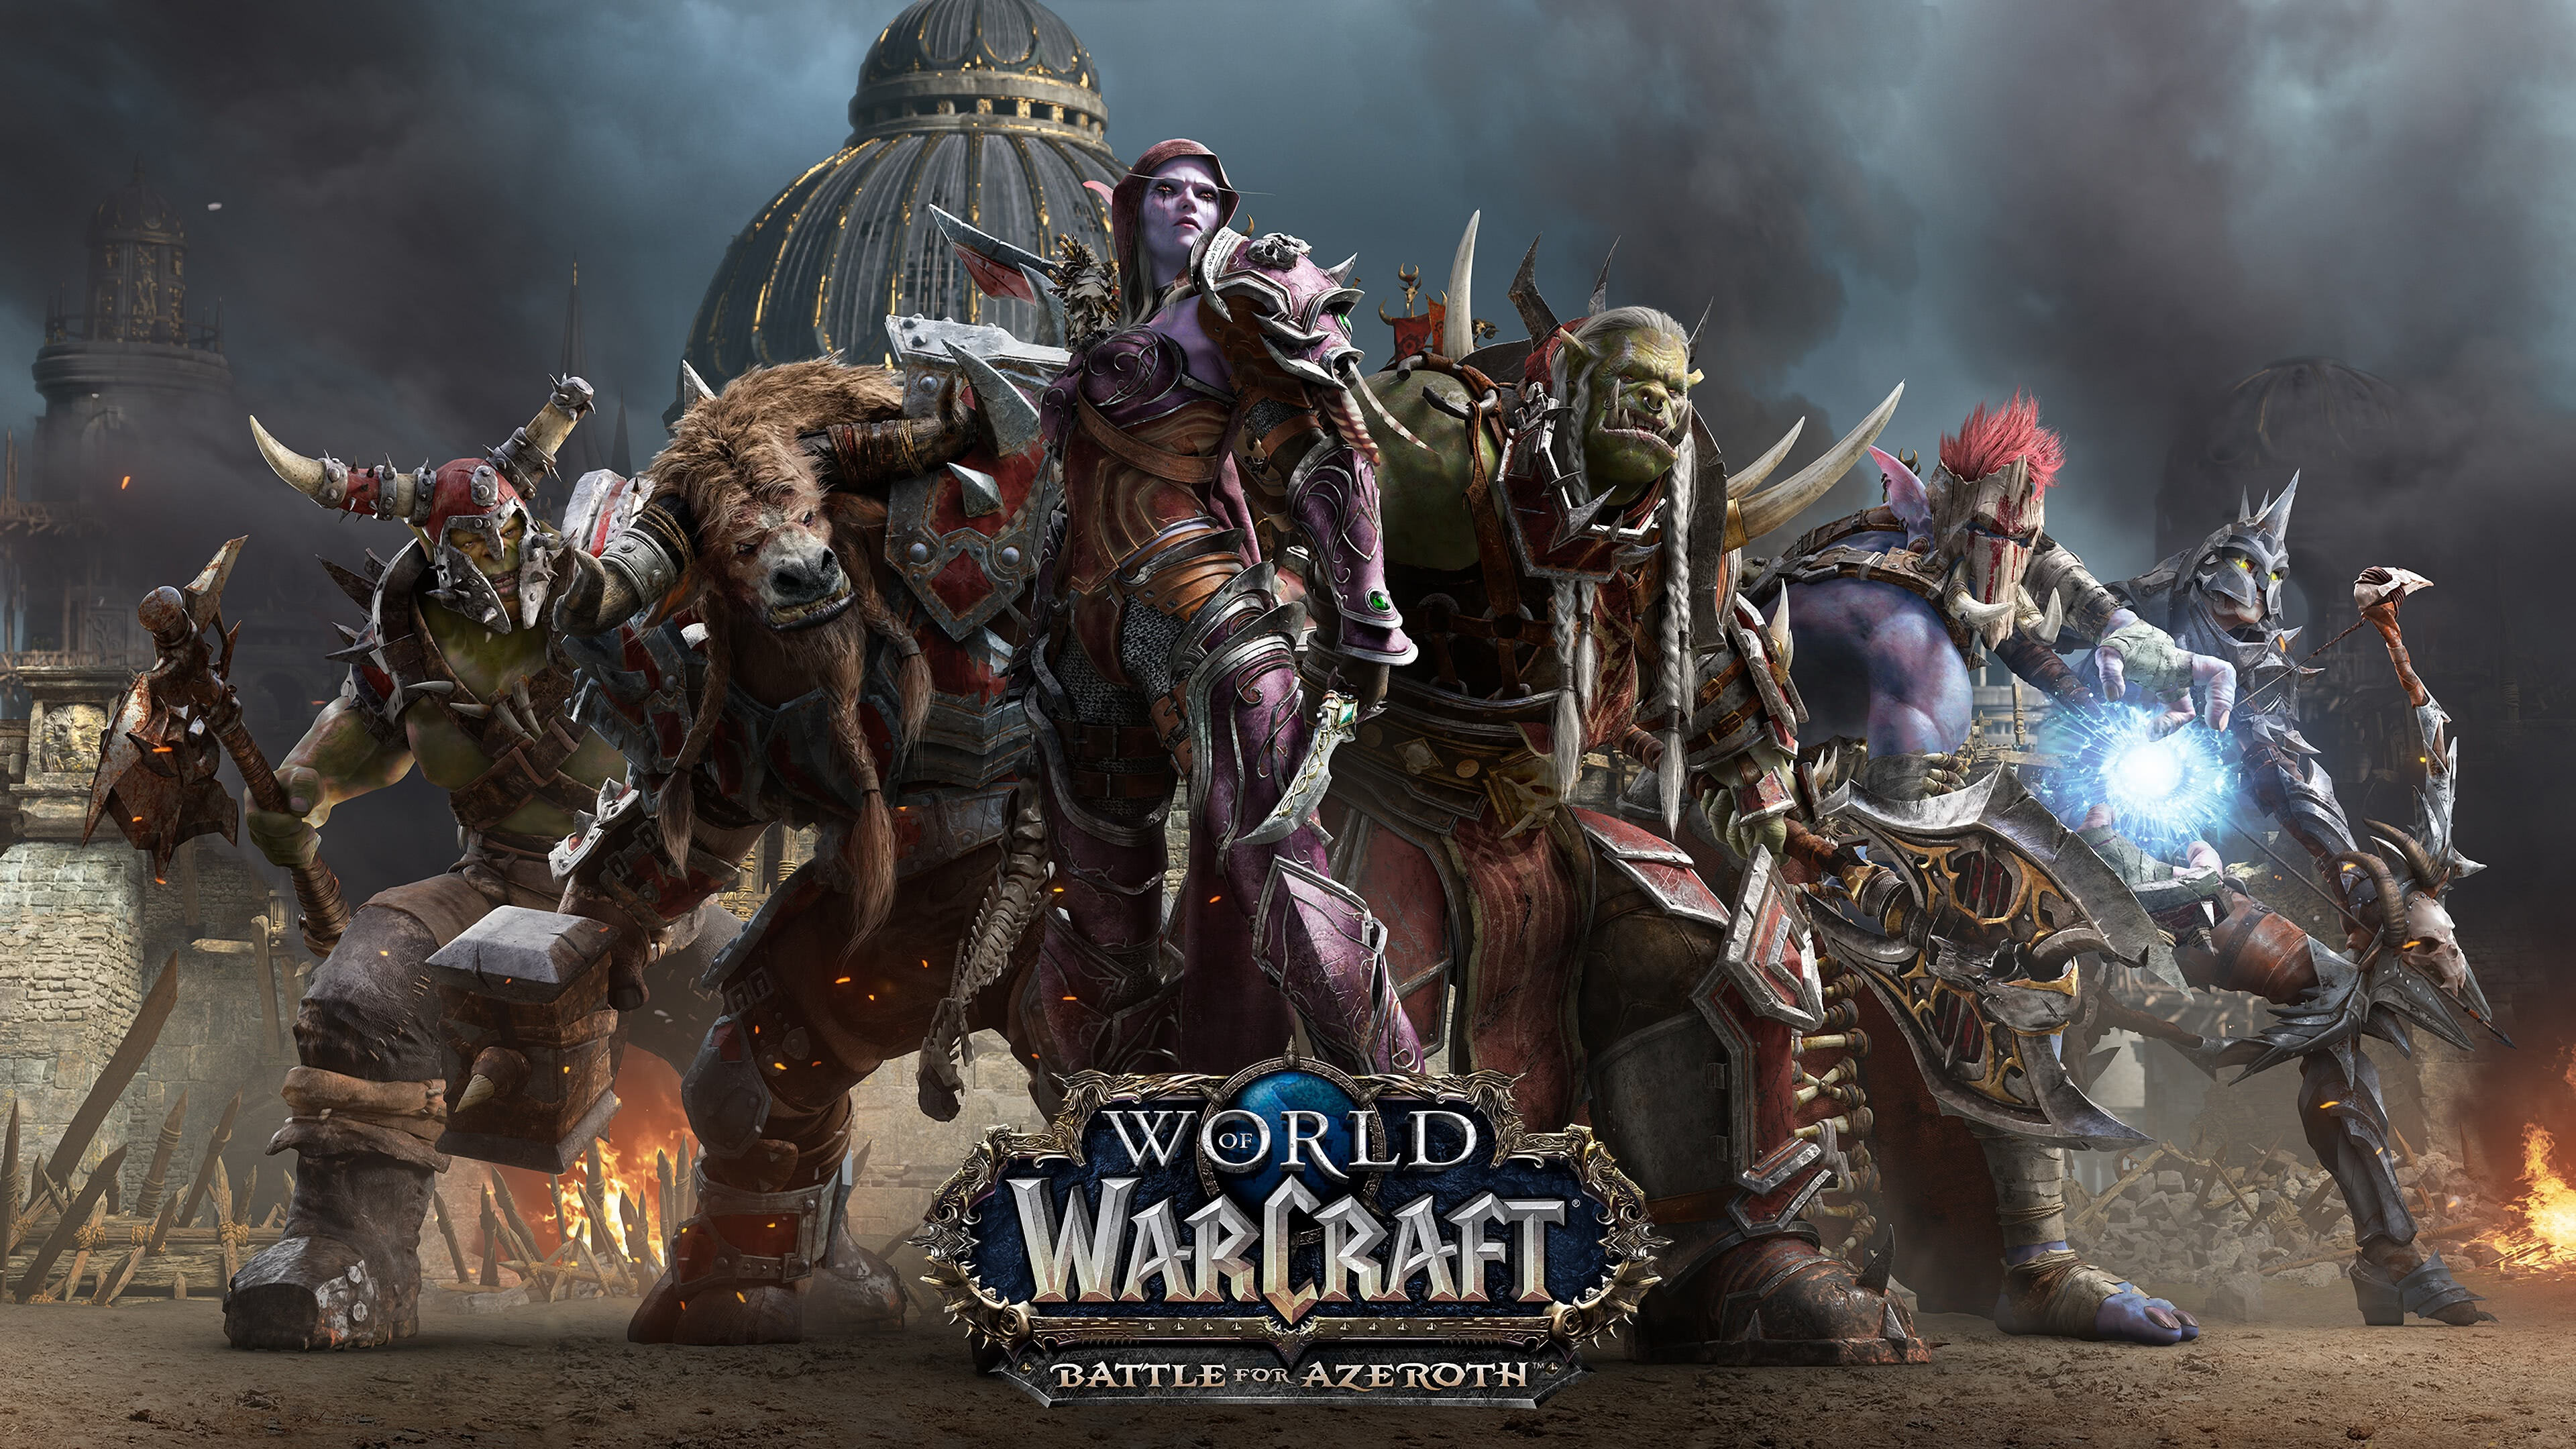 World Of Warcraft Battle For Azeroth Horde Uhd 4k Wallpaper Pixelz